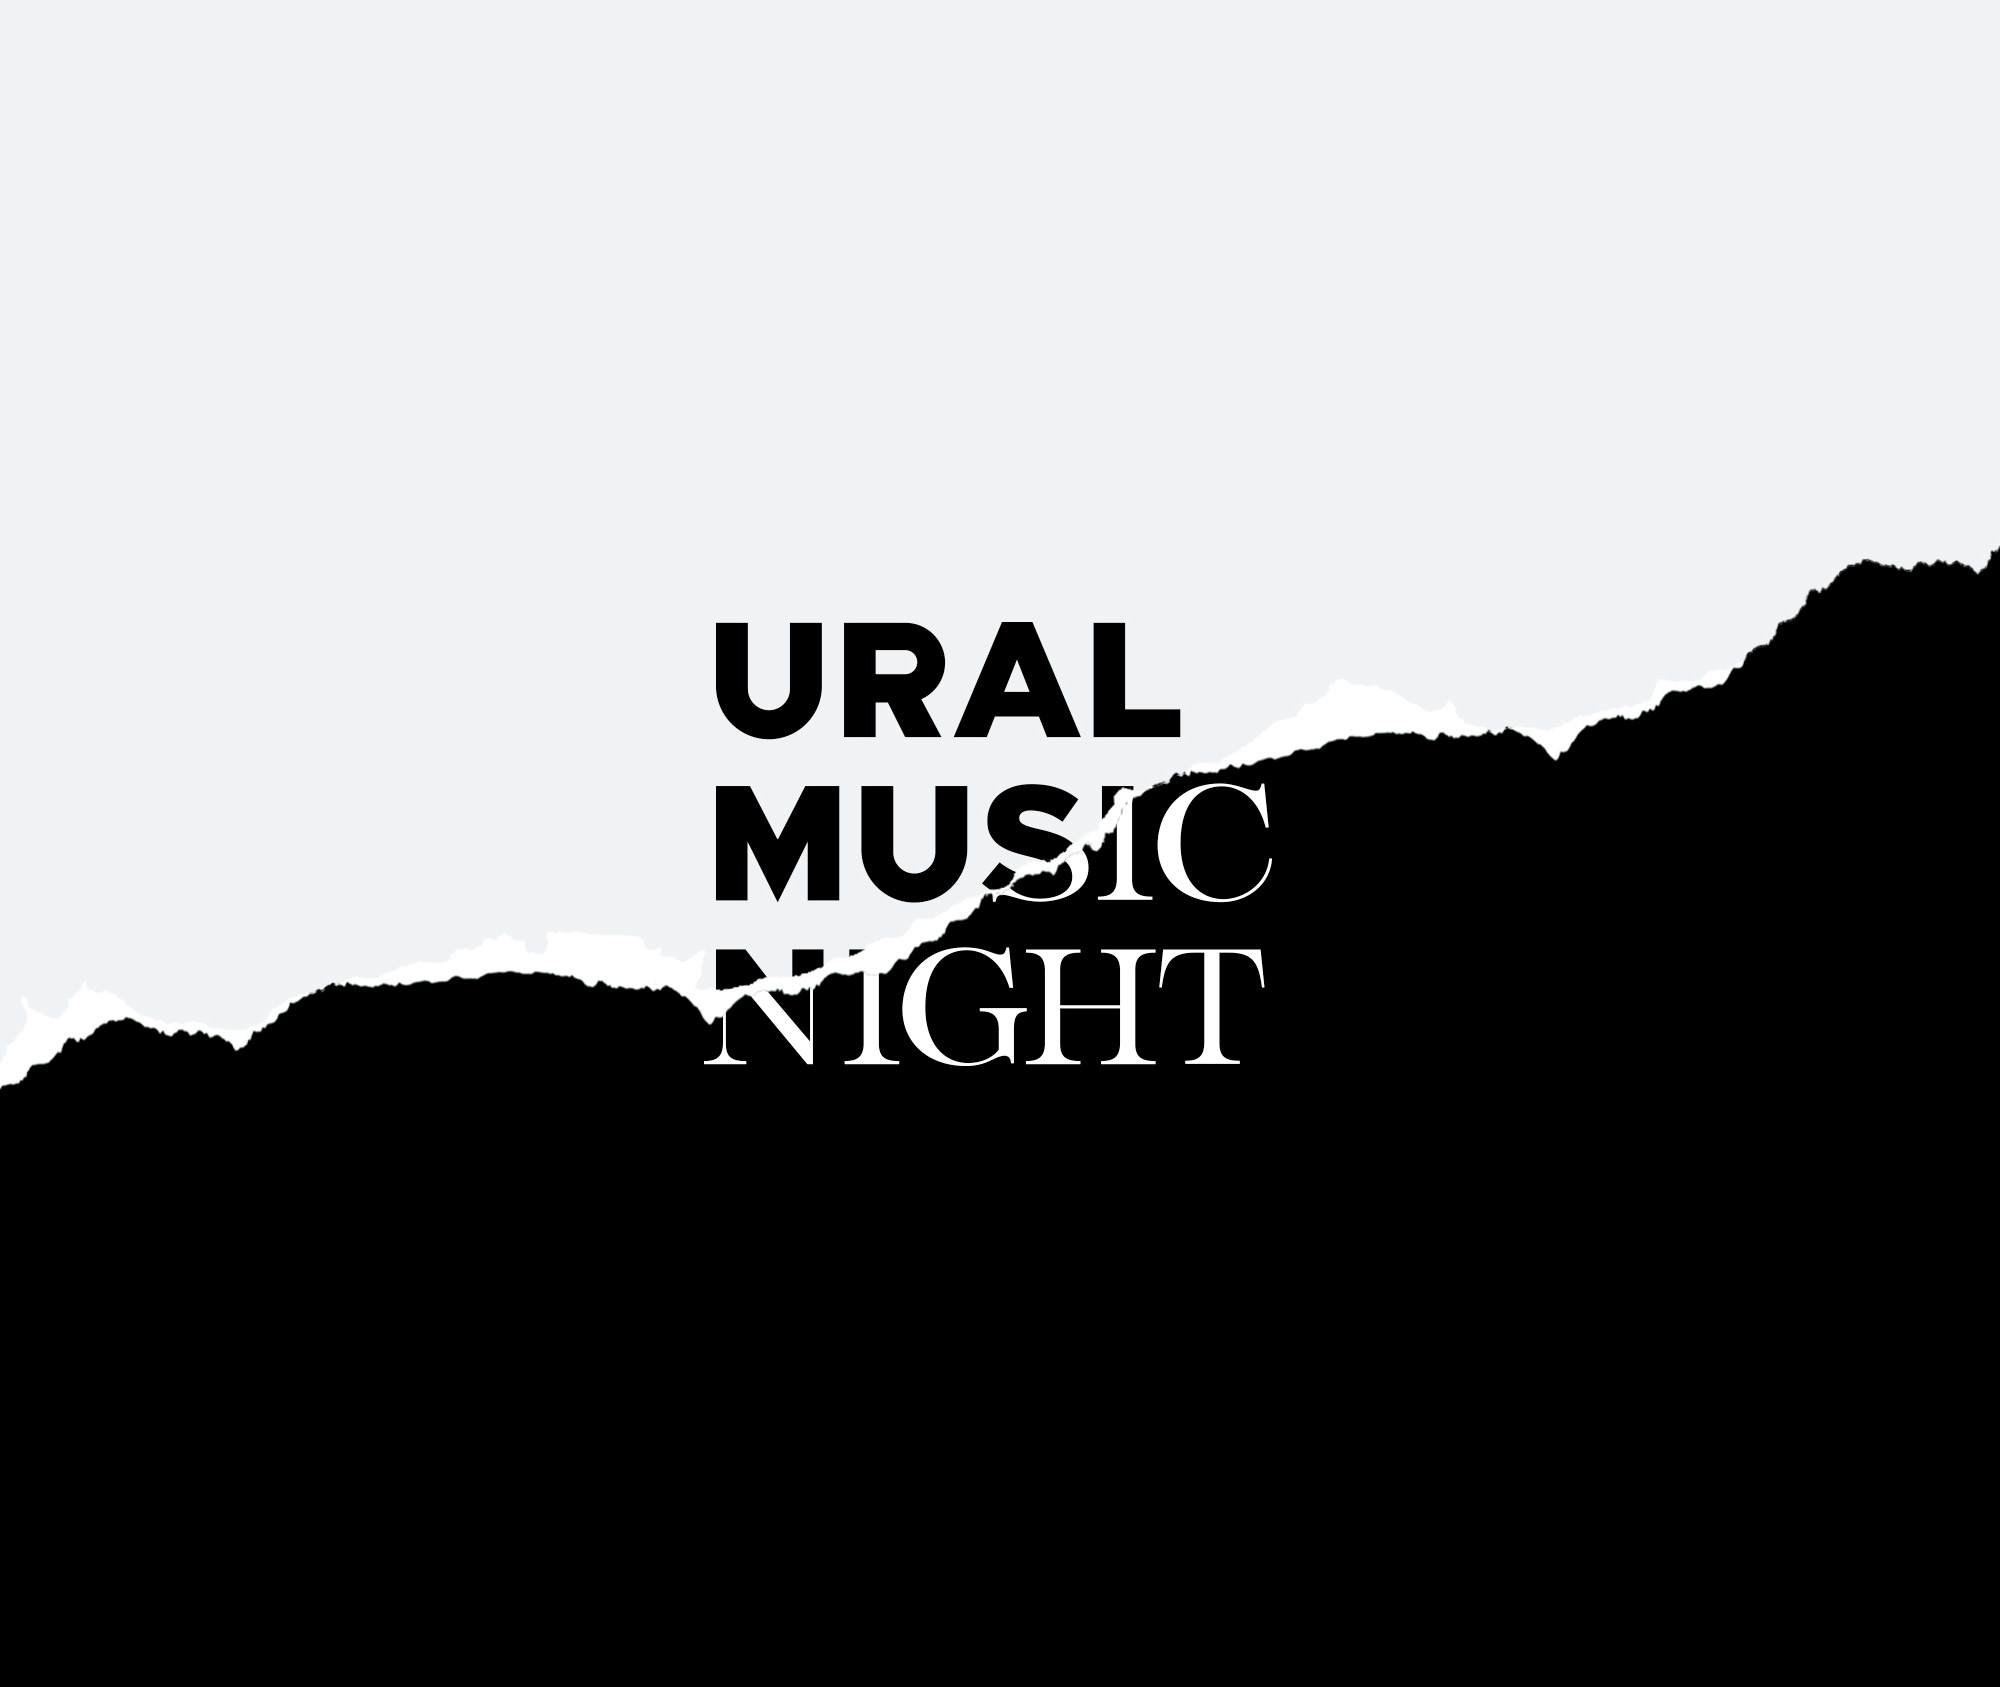 New Logo and Identity for Ural Music Night by Voskhod